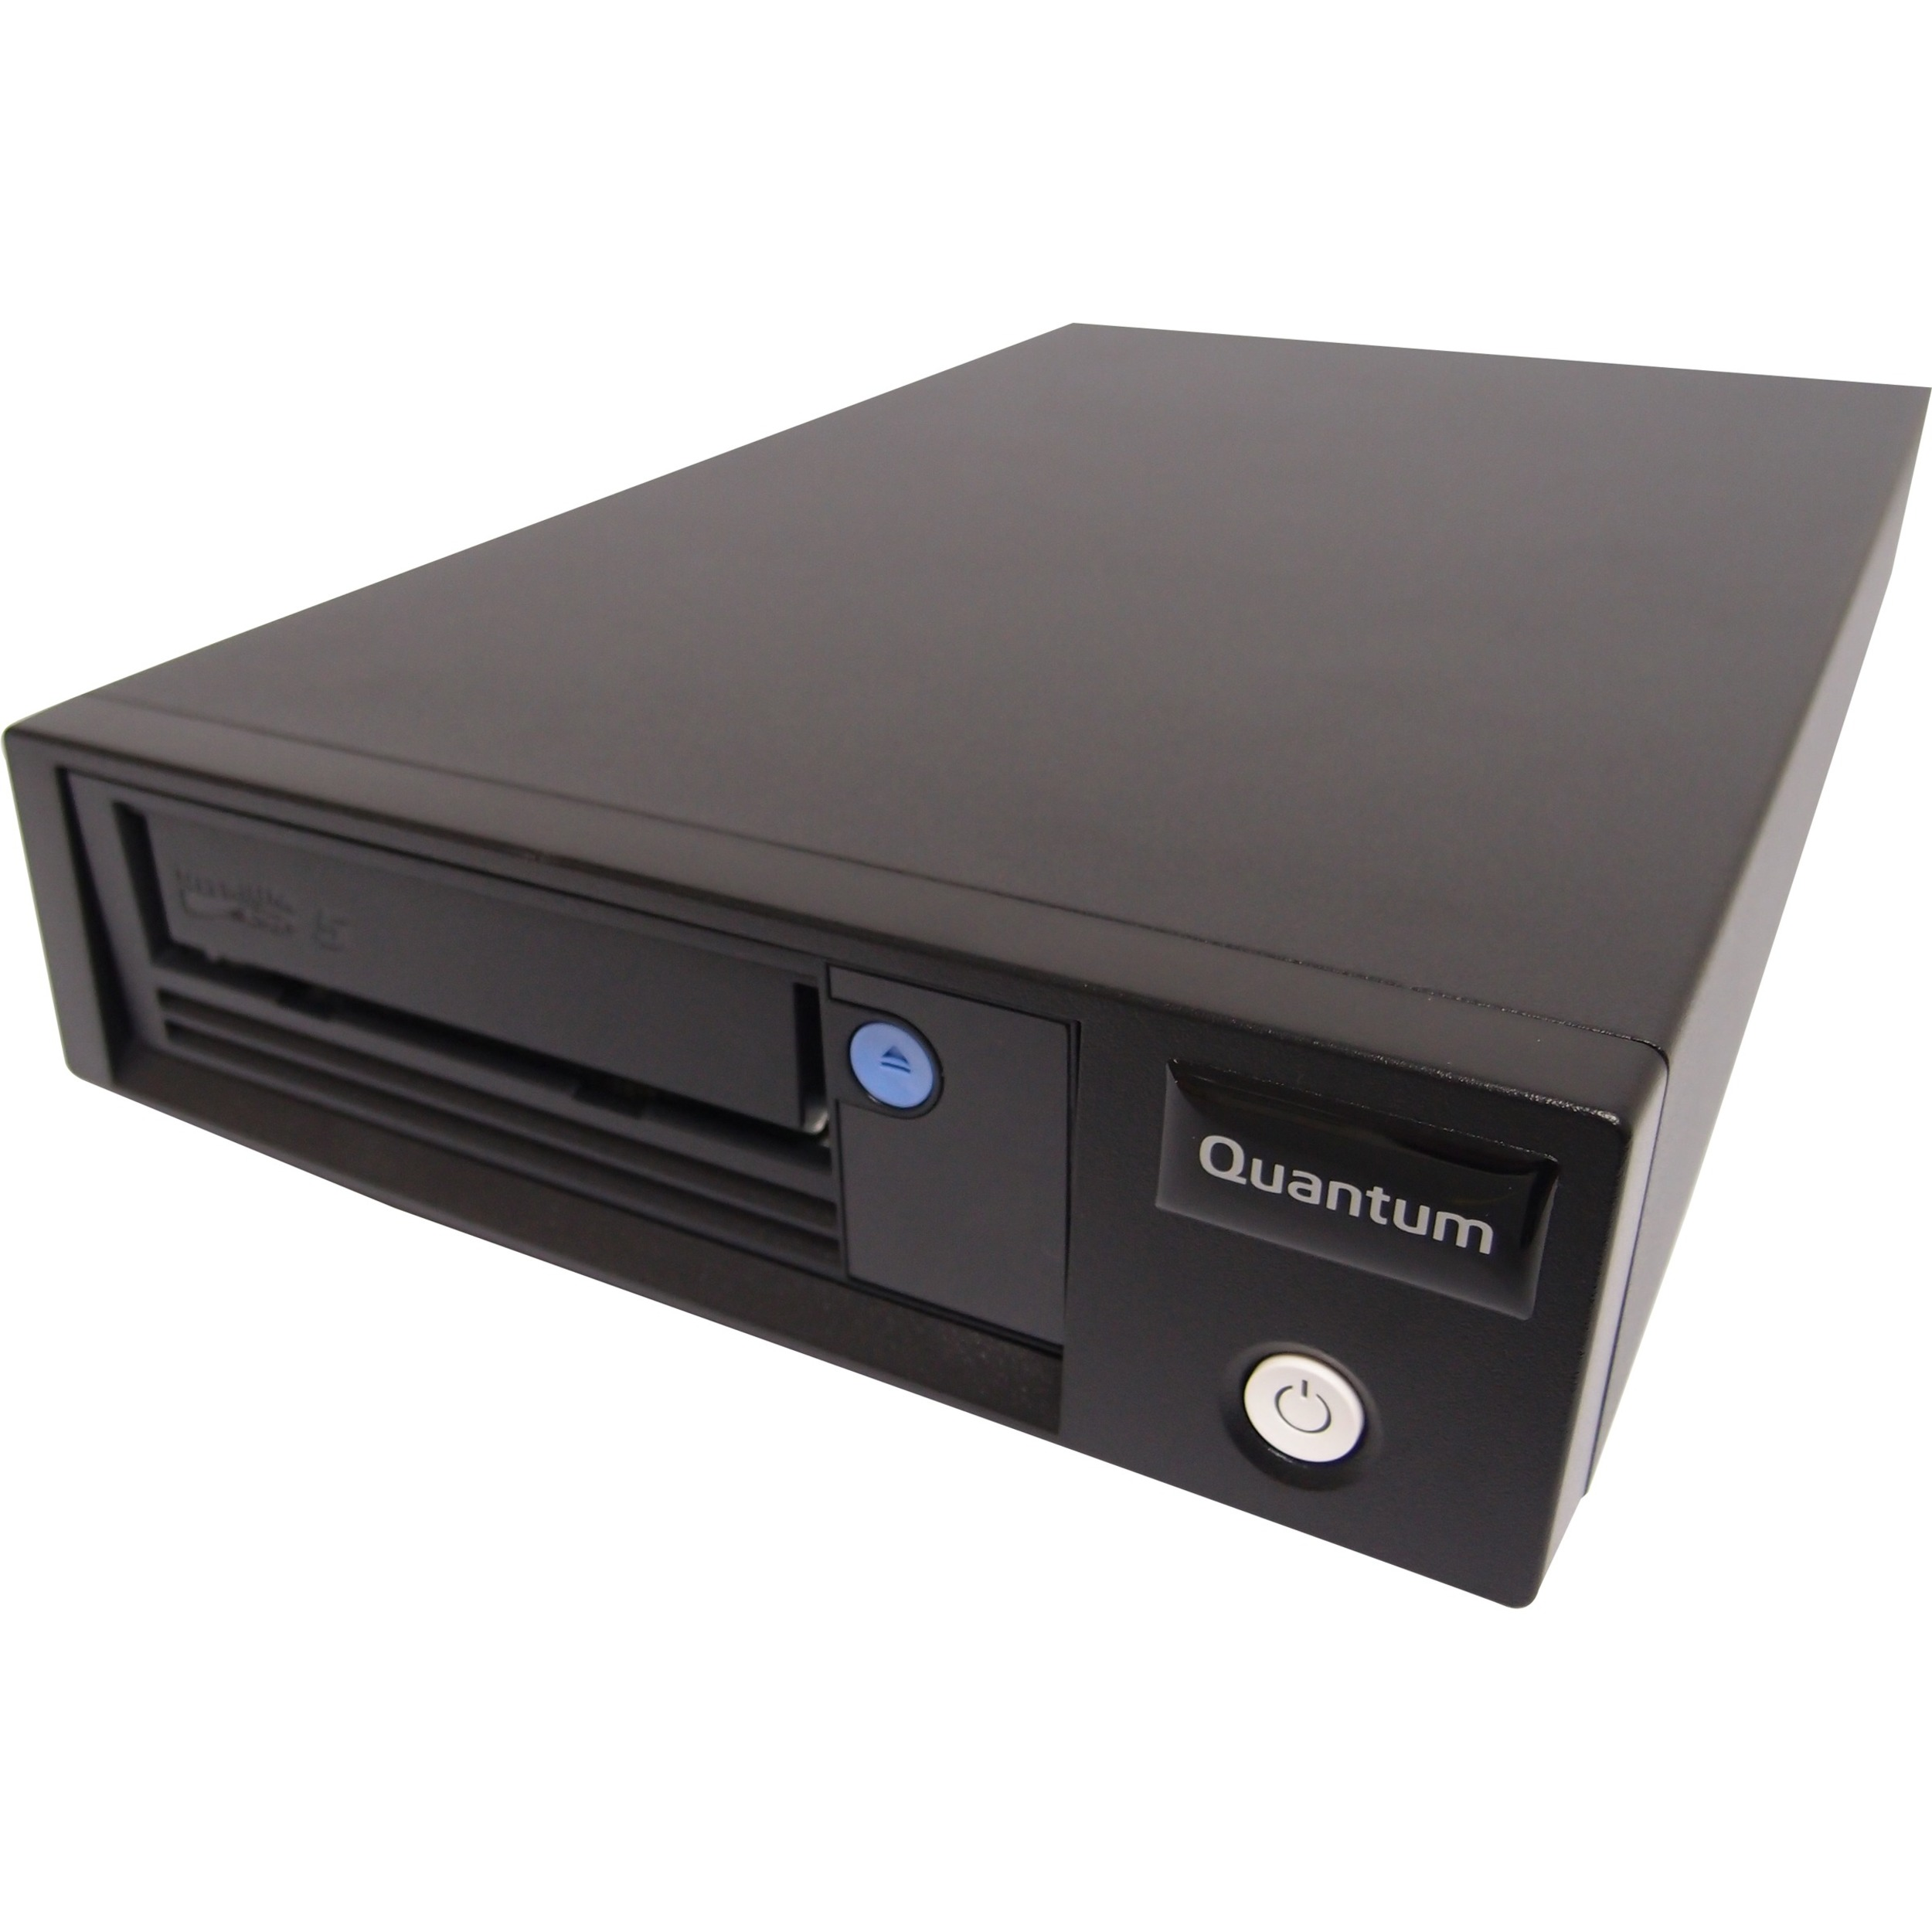 Quantum LTO-6 Tape Drive - 2.50 TB Native/6.25 TB Compressed - SAS - 1/2H Height - Tabletop